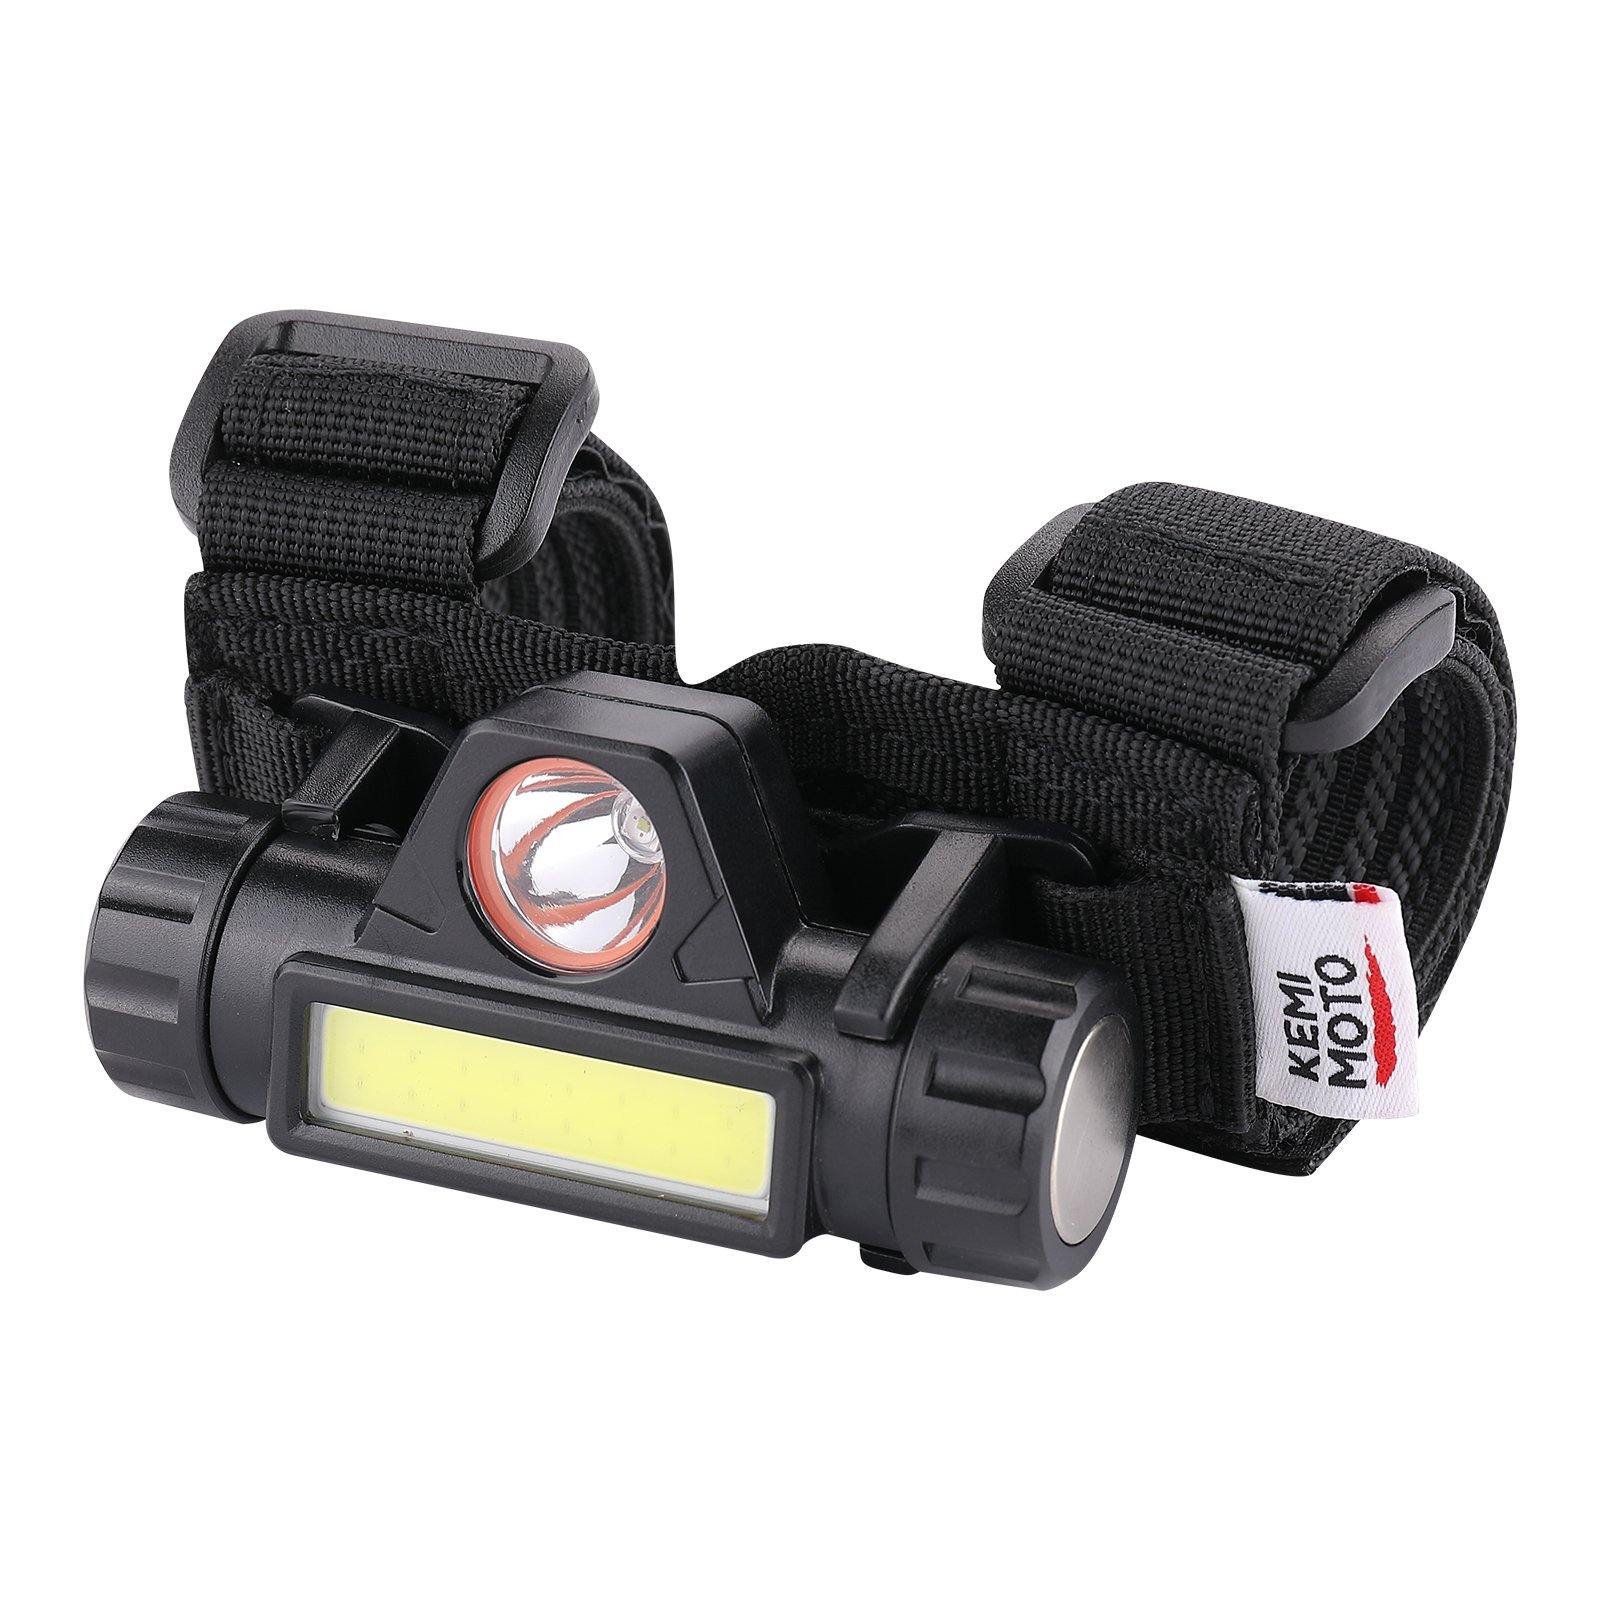 Universal Roll Bar Mount with LED Light - Kemimoto